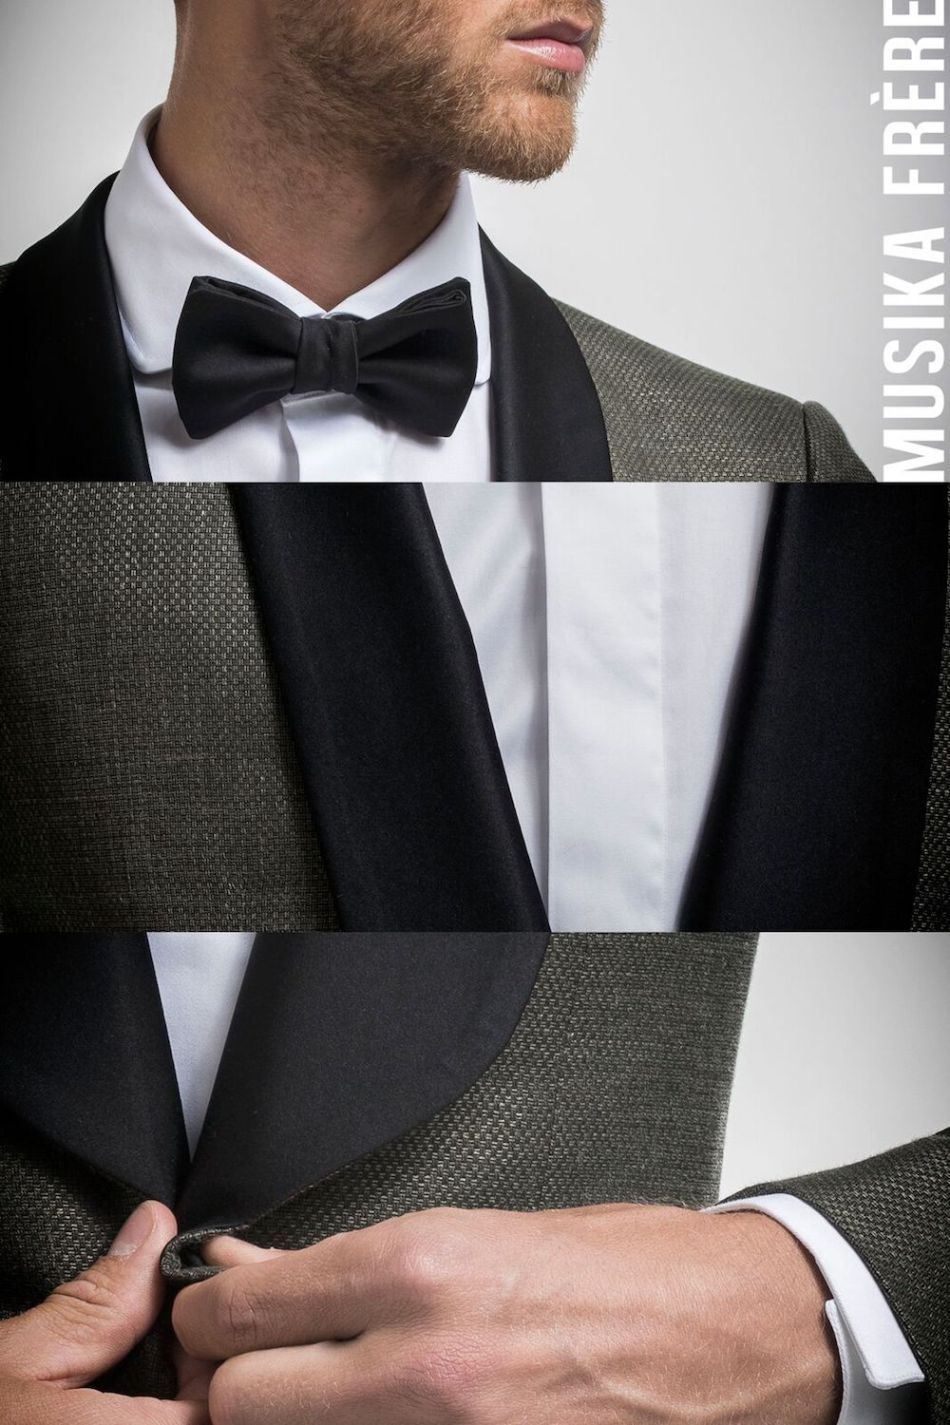 Musika Frere Menswear Lookbook by Michael Del Buono3